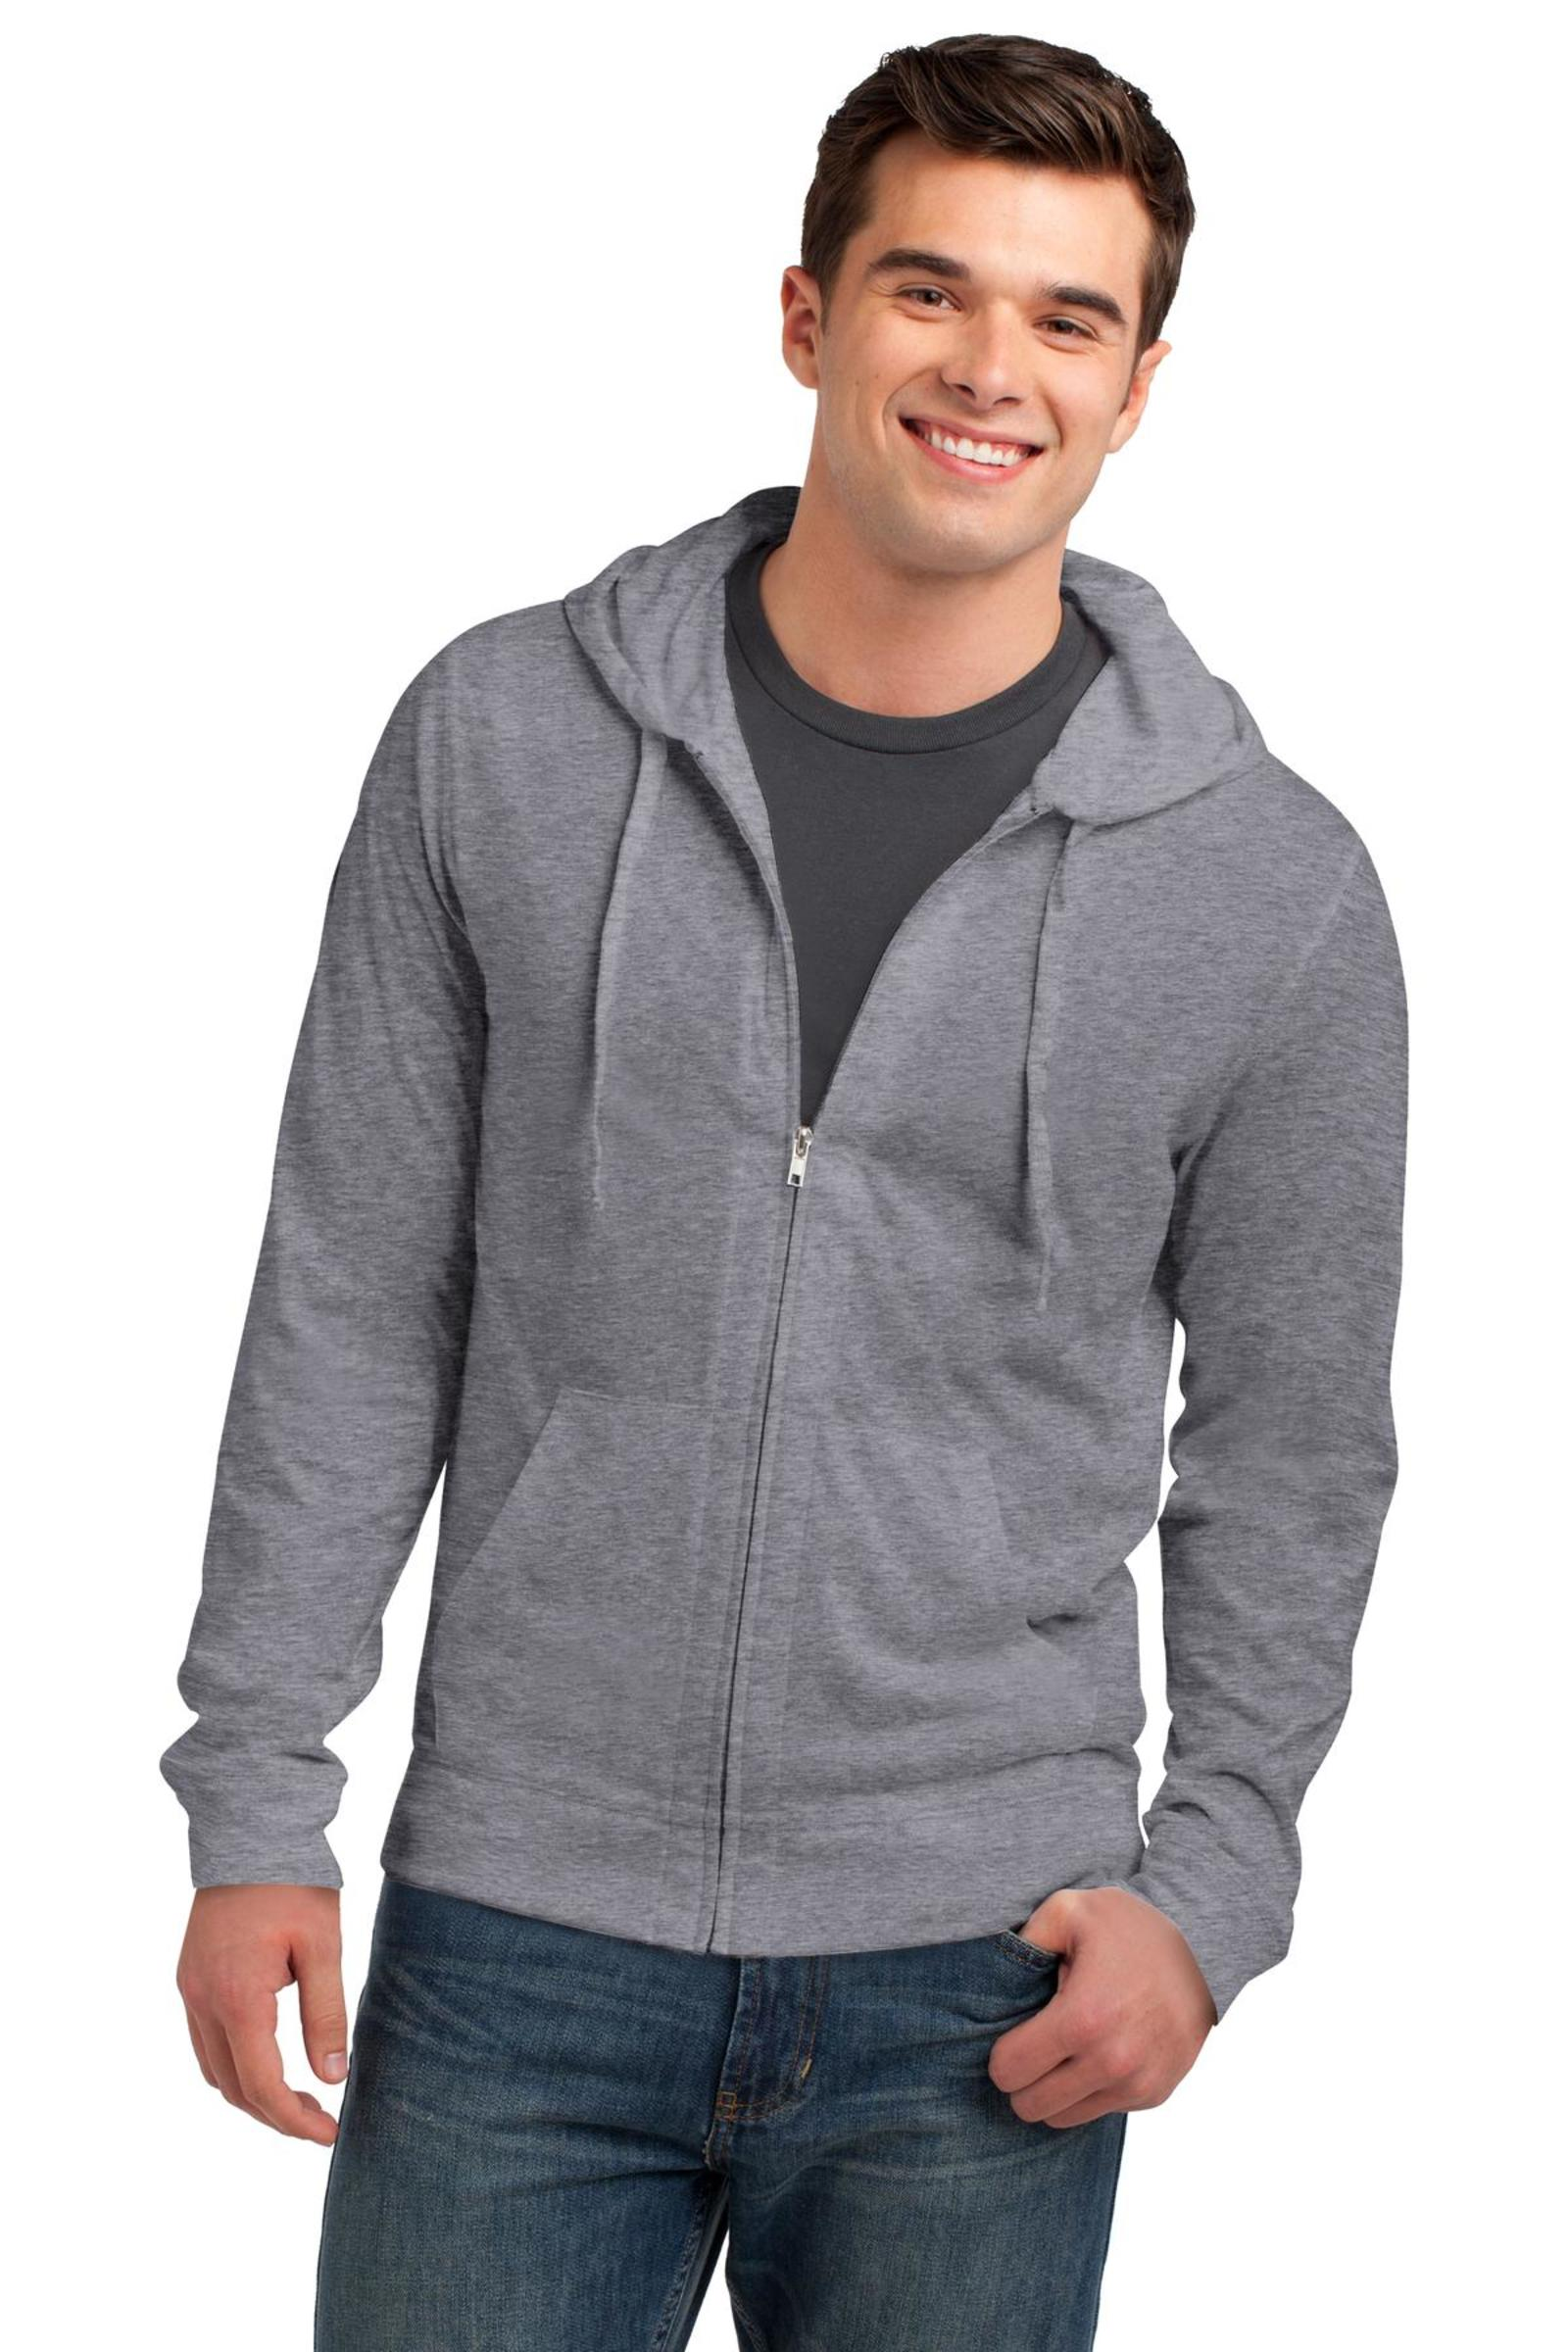 District Embroidered Men's Jersey Full-Zip Hooded Tee